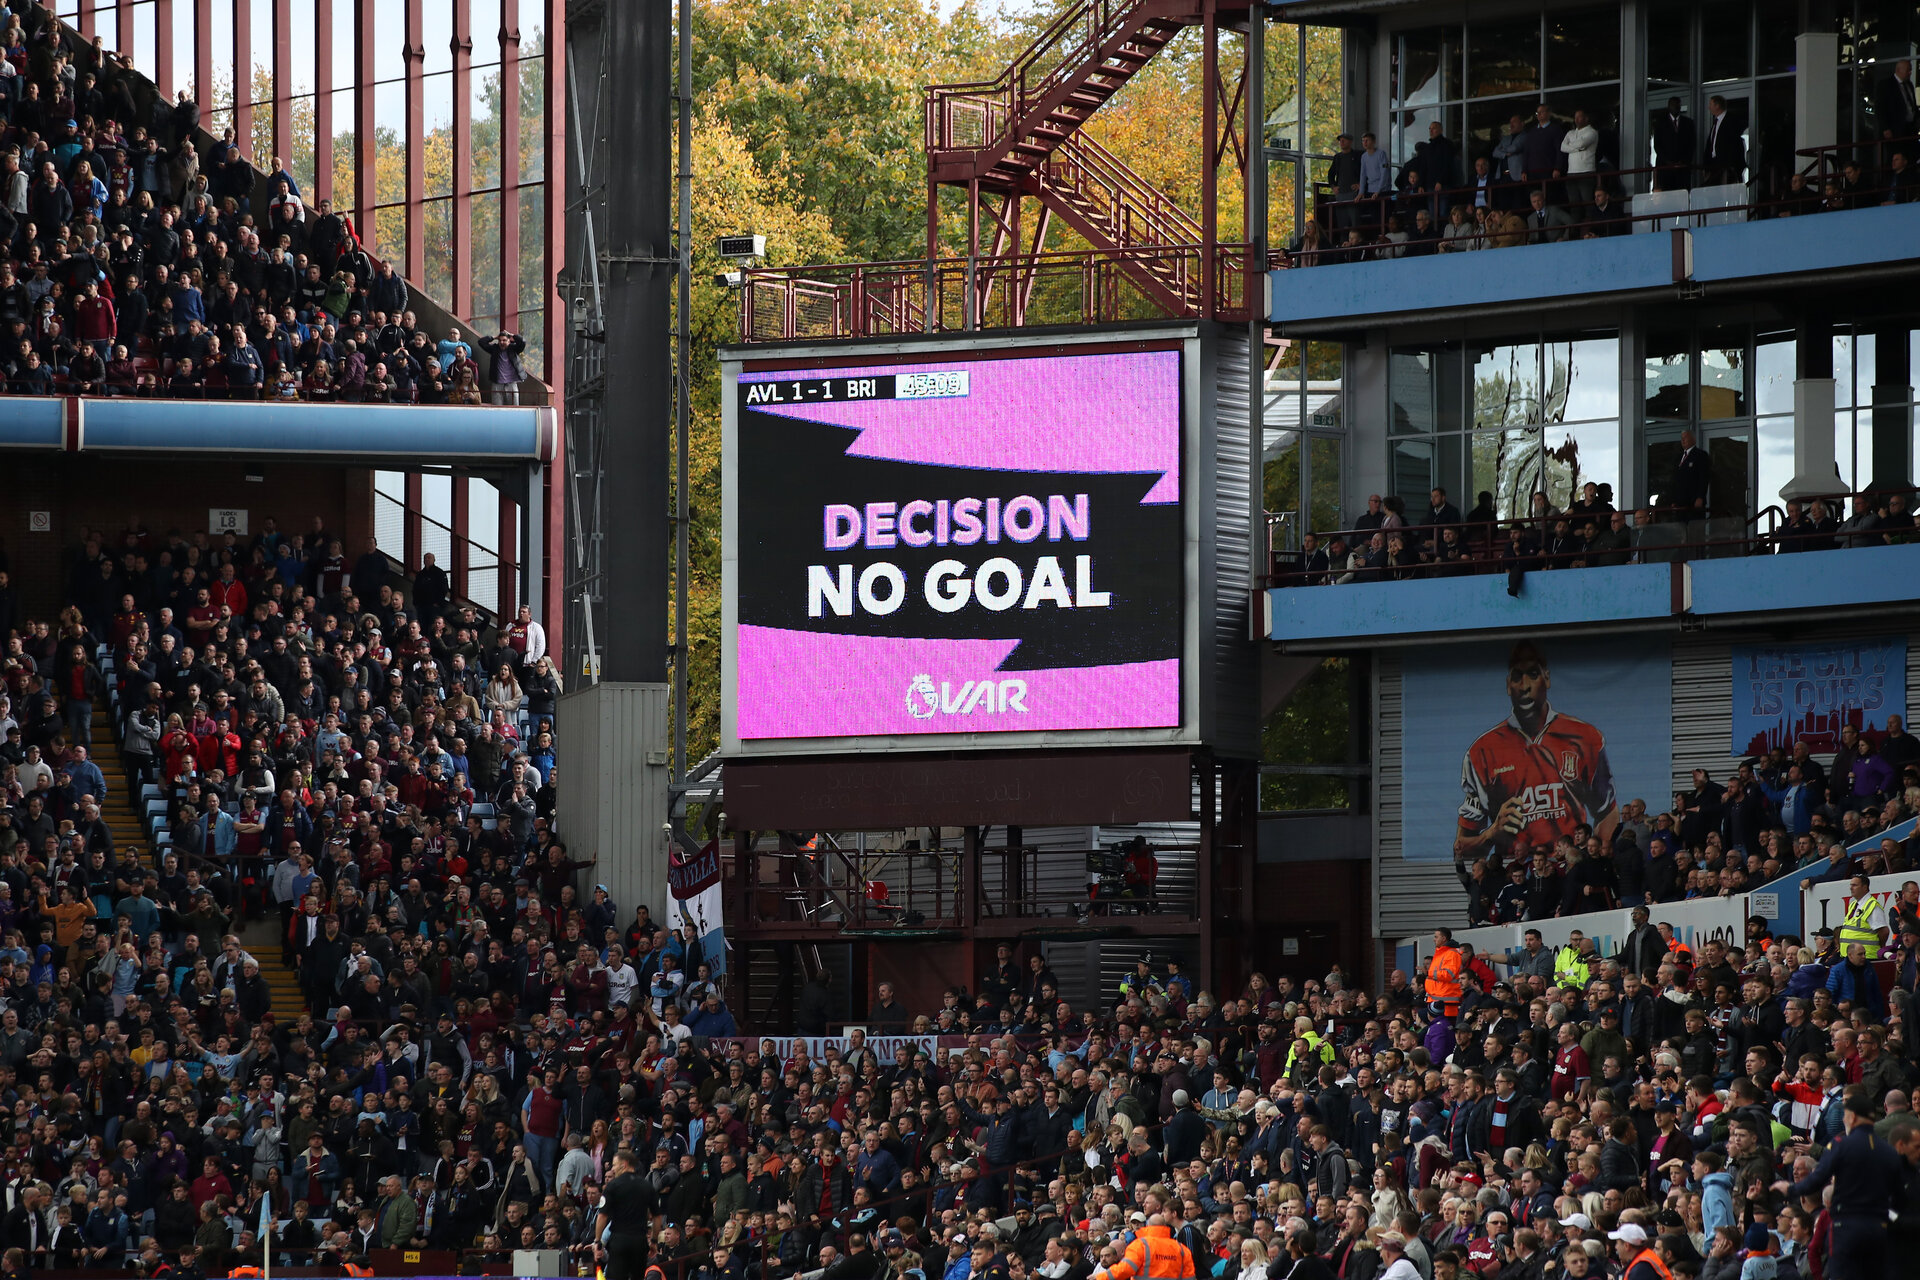 BIRMINGHAM, ENGLAND - OCTOBER 19: The big screen showing the decision of a no goal from VAR is seen during the Premier League match between Wolverhampton Wanderers and Southampton FC at Molineux on October 19, 2019 in Wolverhampton, United Kingdom. (Photo by Marc Atkins/Getty Images)